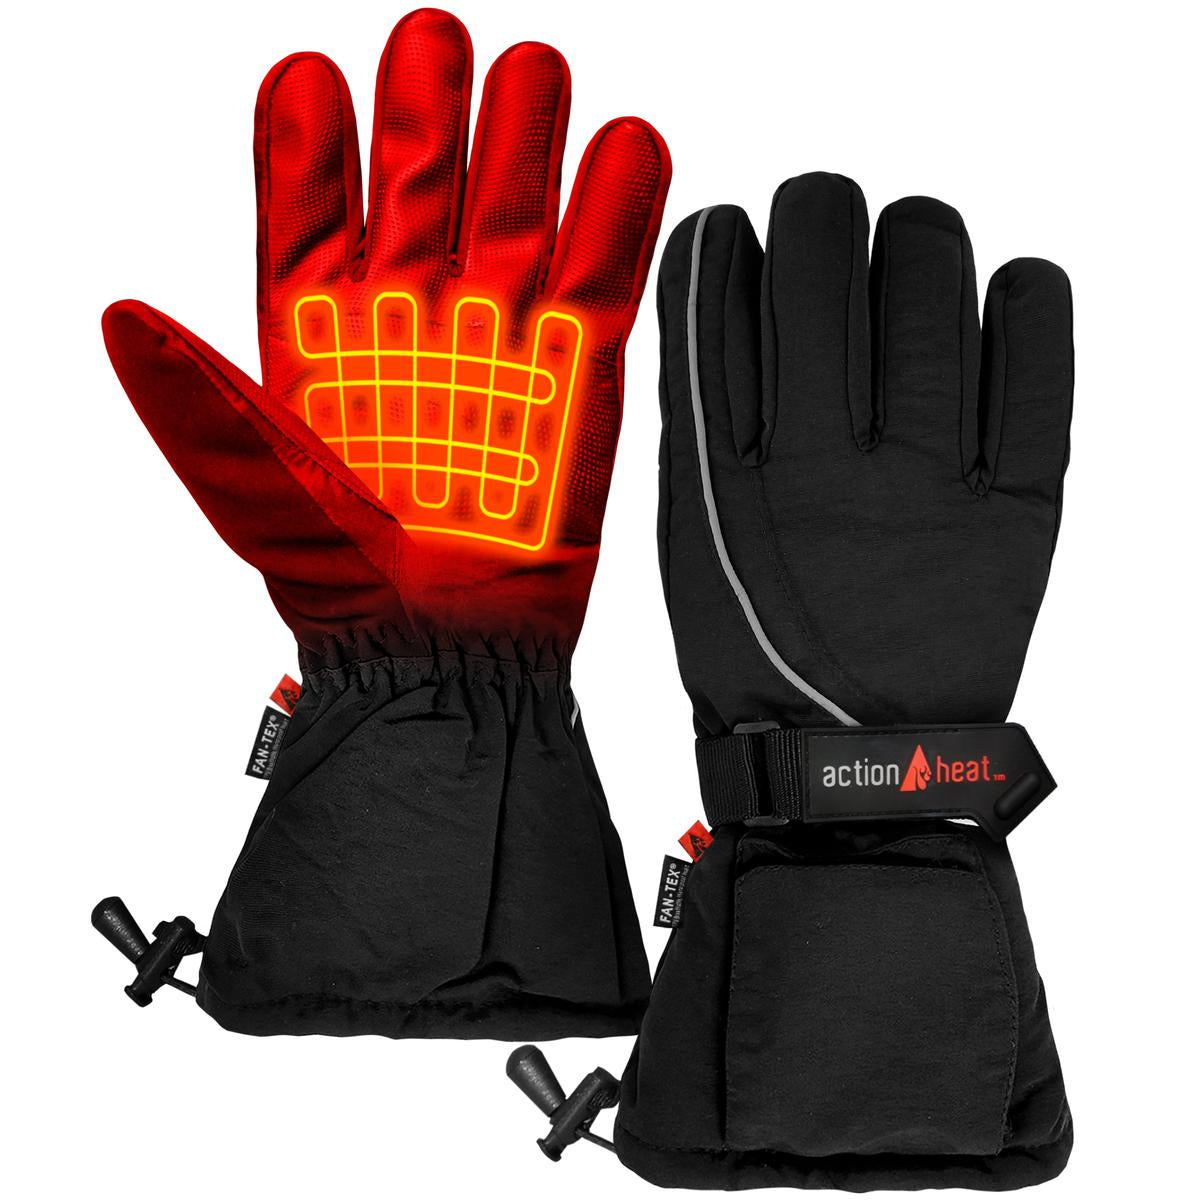 ActionHeat AA Battery Heated Gloves - Men's - Back